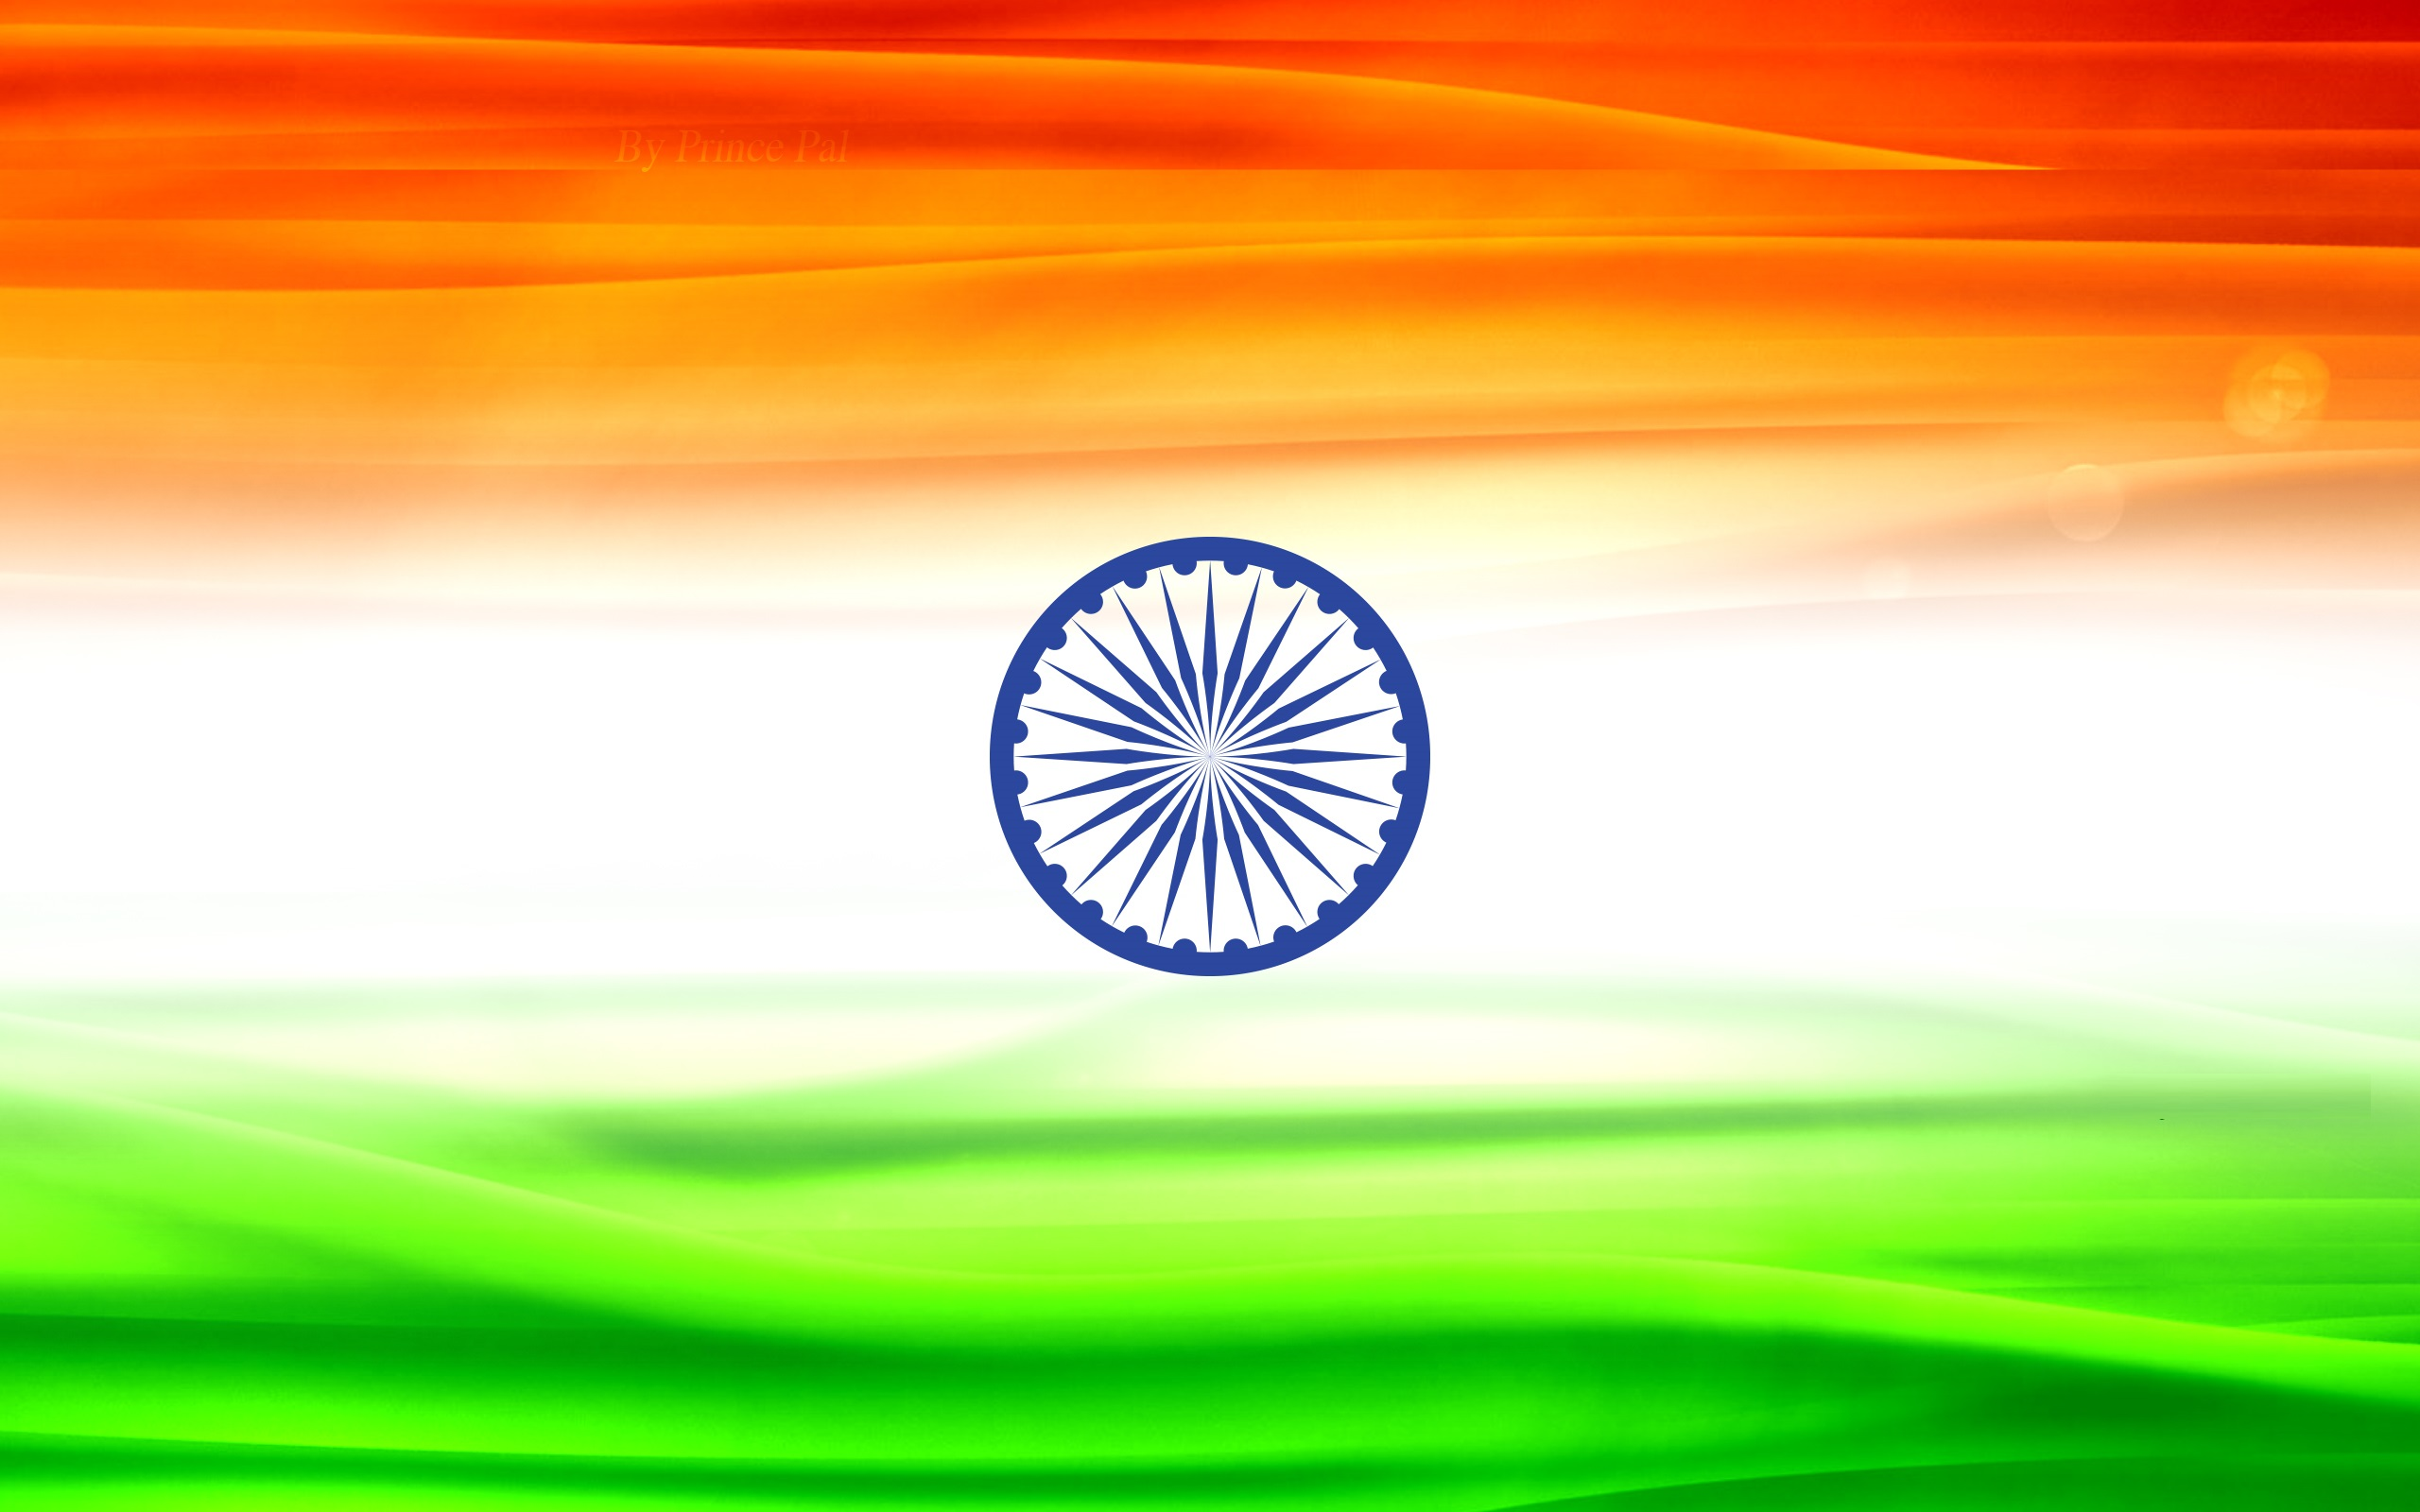 Wallpaper download india - Indian Flag Wallpapers Hd Images Free Download 3